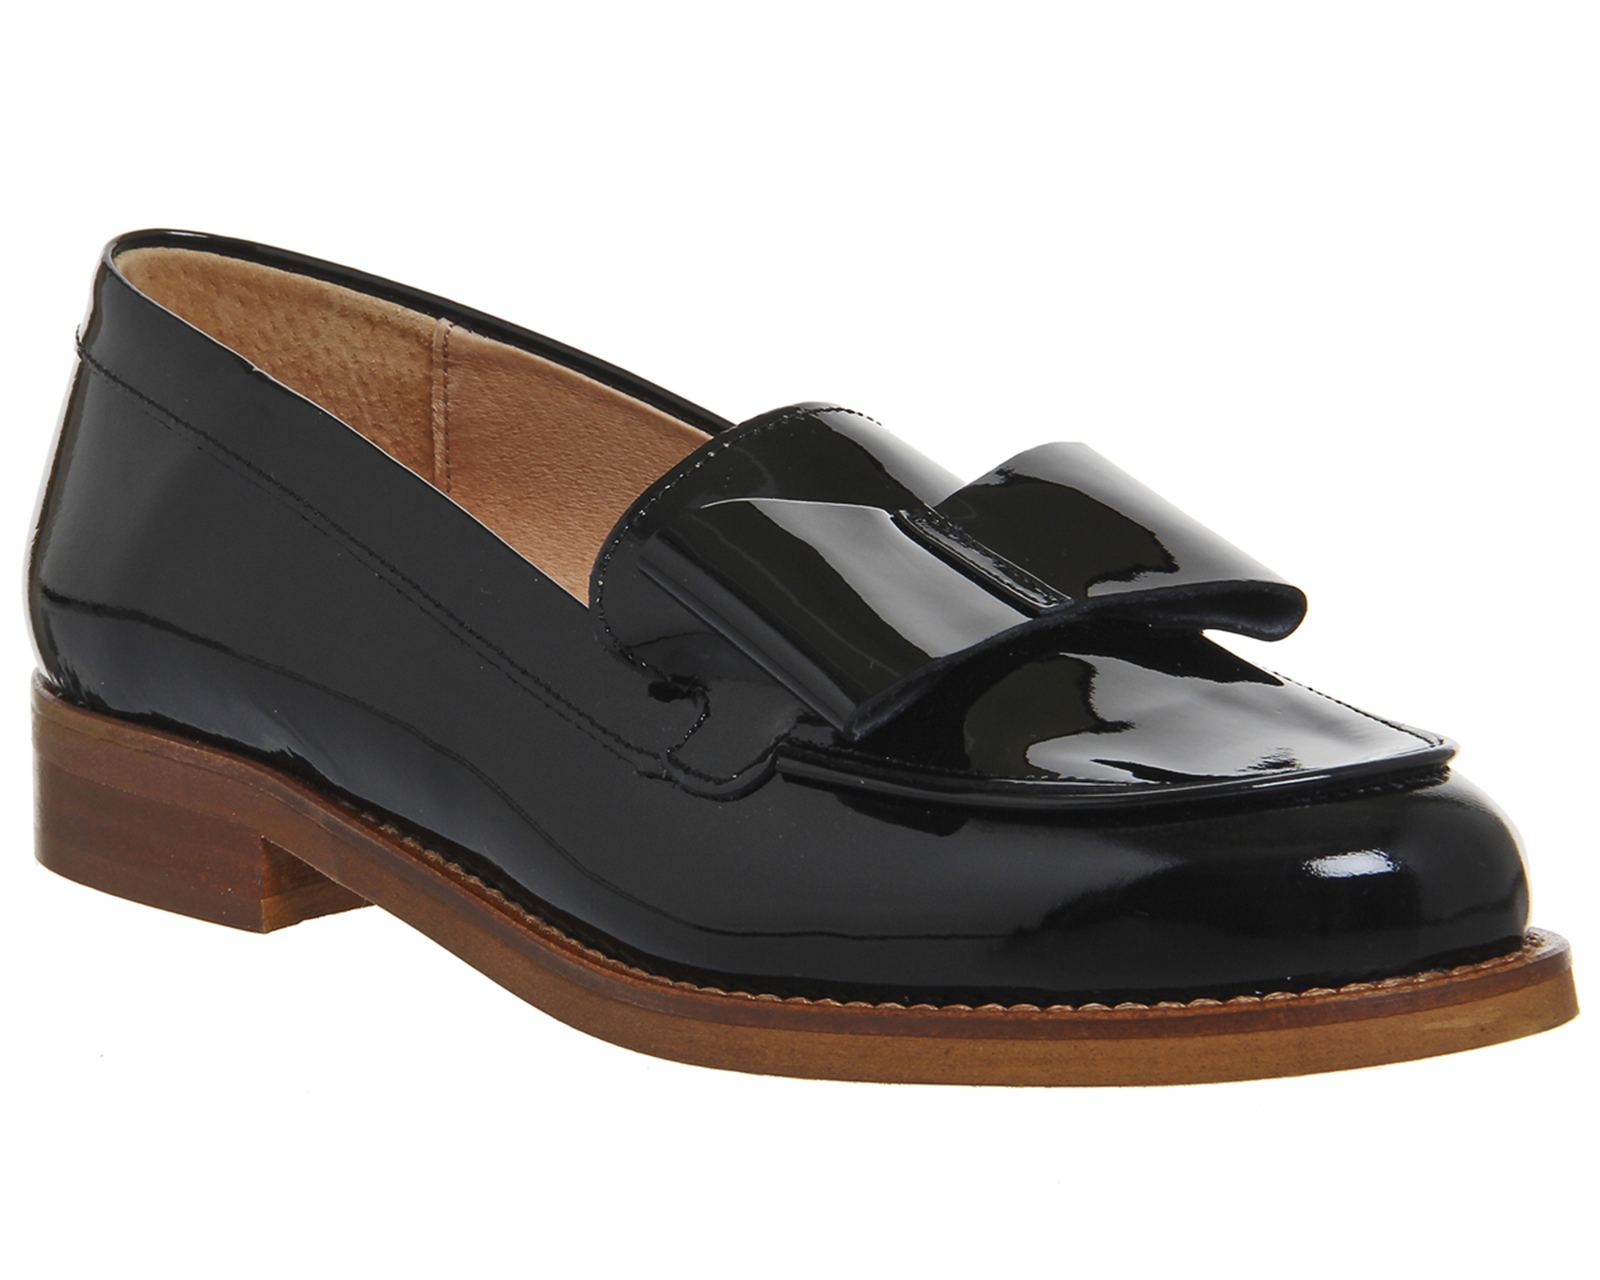 Find great deals on eBay for Womens Black Flat Loafers in Flats and Oxfords for Women. Shop with confidence.